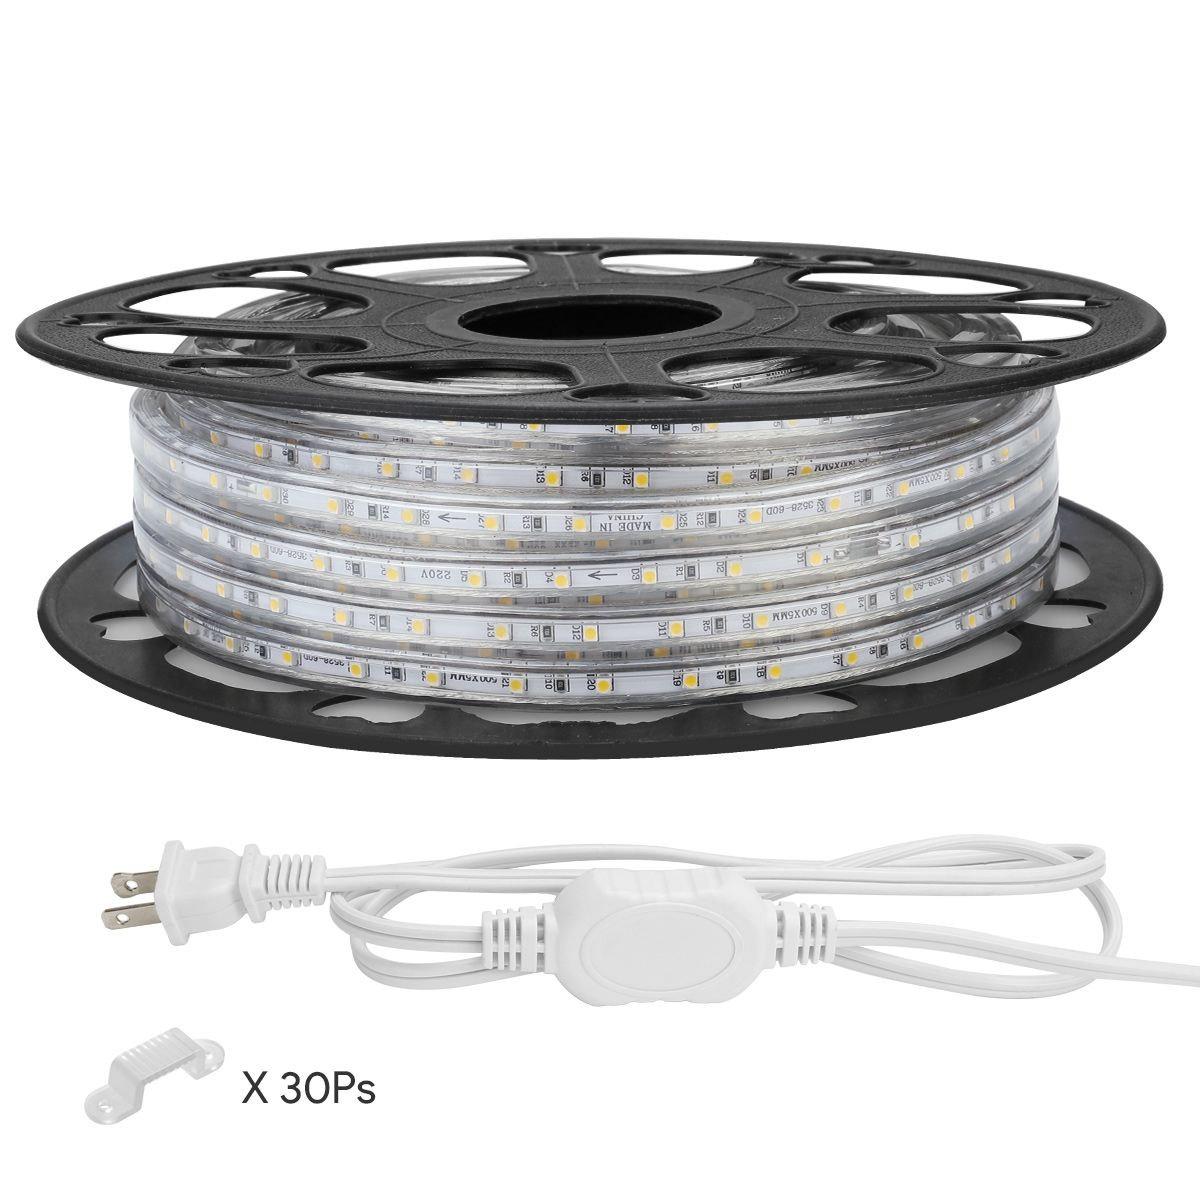 Le 49ft Led Strip Lights 120 Volt 70w 900 Smd 3528 Leds Waterproof Flexible Warm White Etl Listed Strip Lighting Led Strip Lighting Waterproof Led Lights